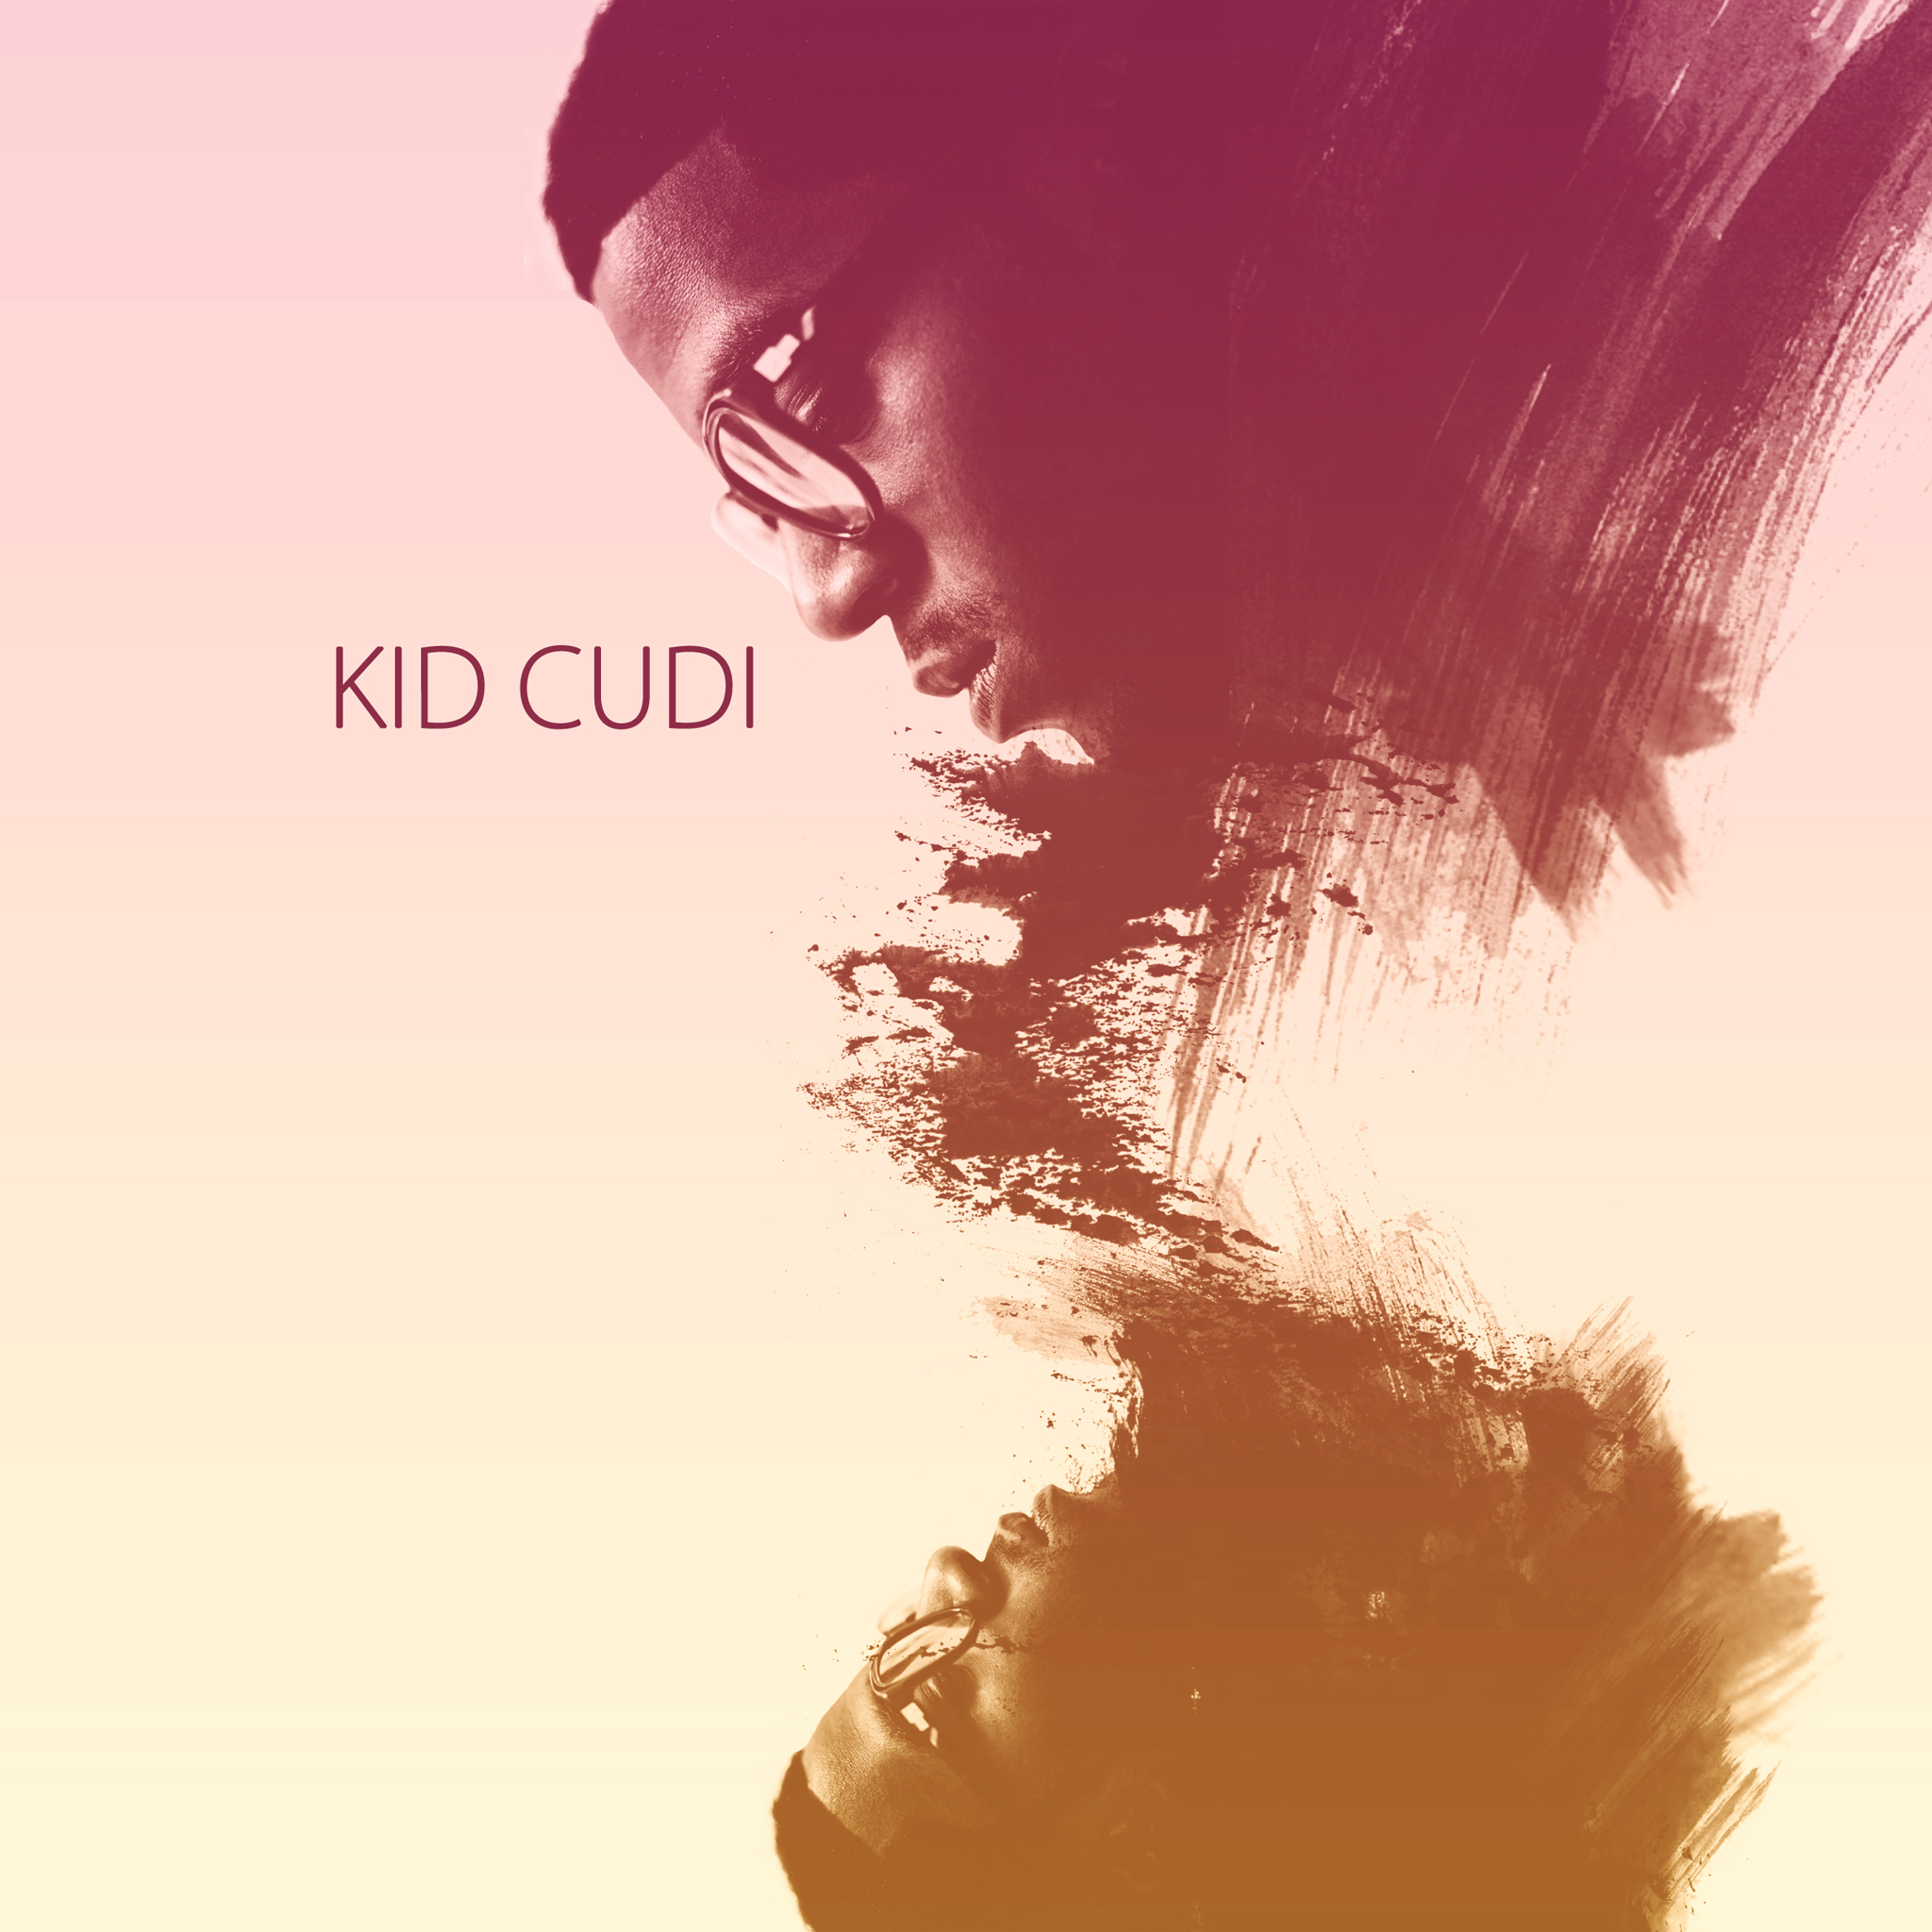 Kid Cudi 3Wallpapers iPad Retina Kid Cudi   iPad Retina